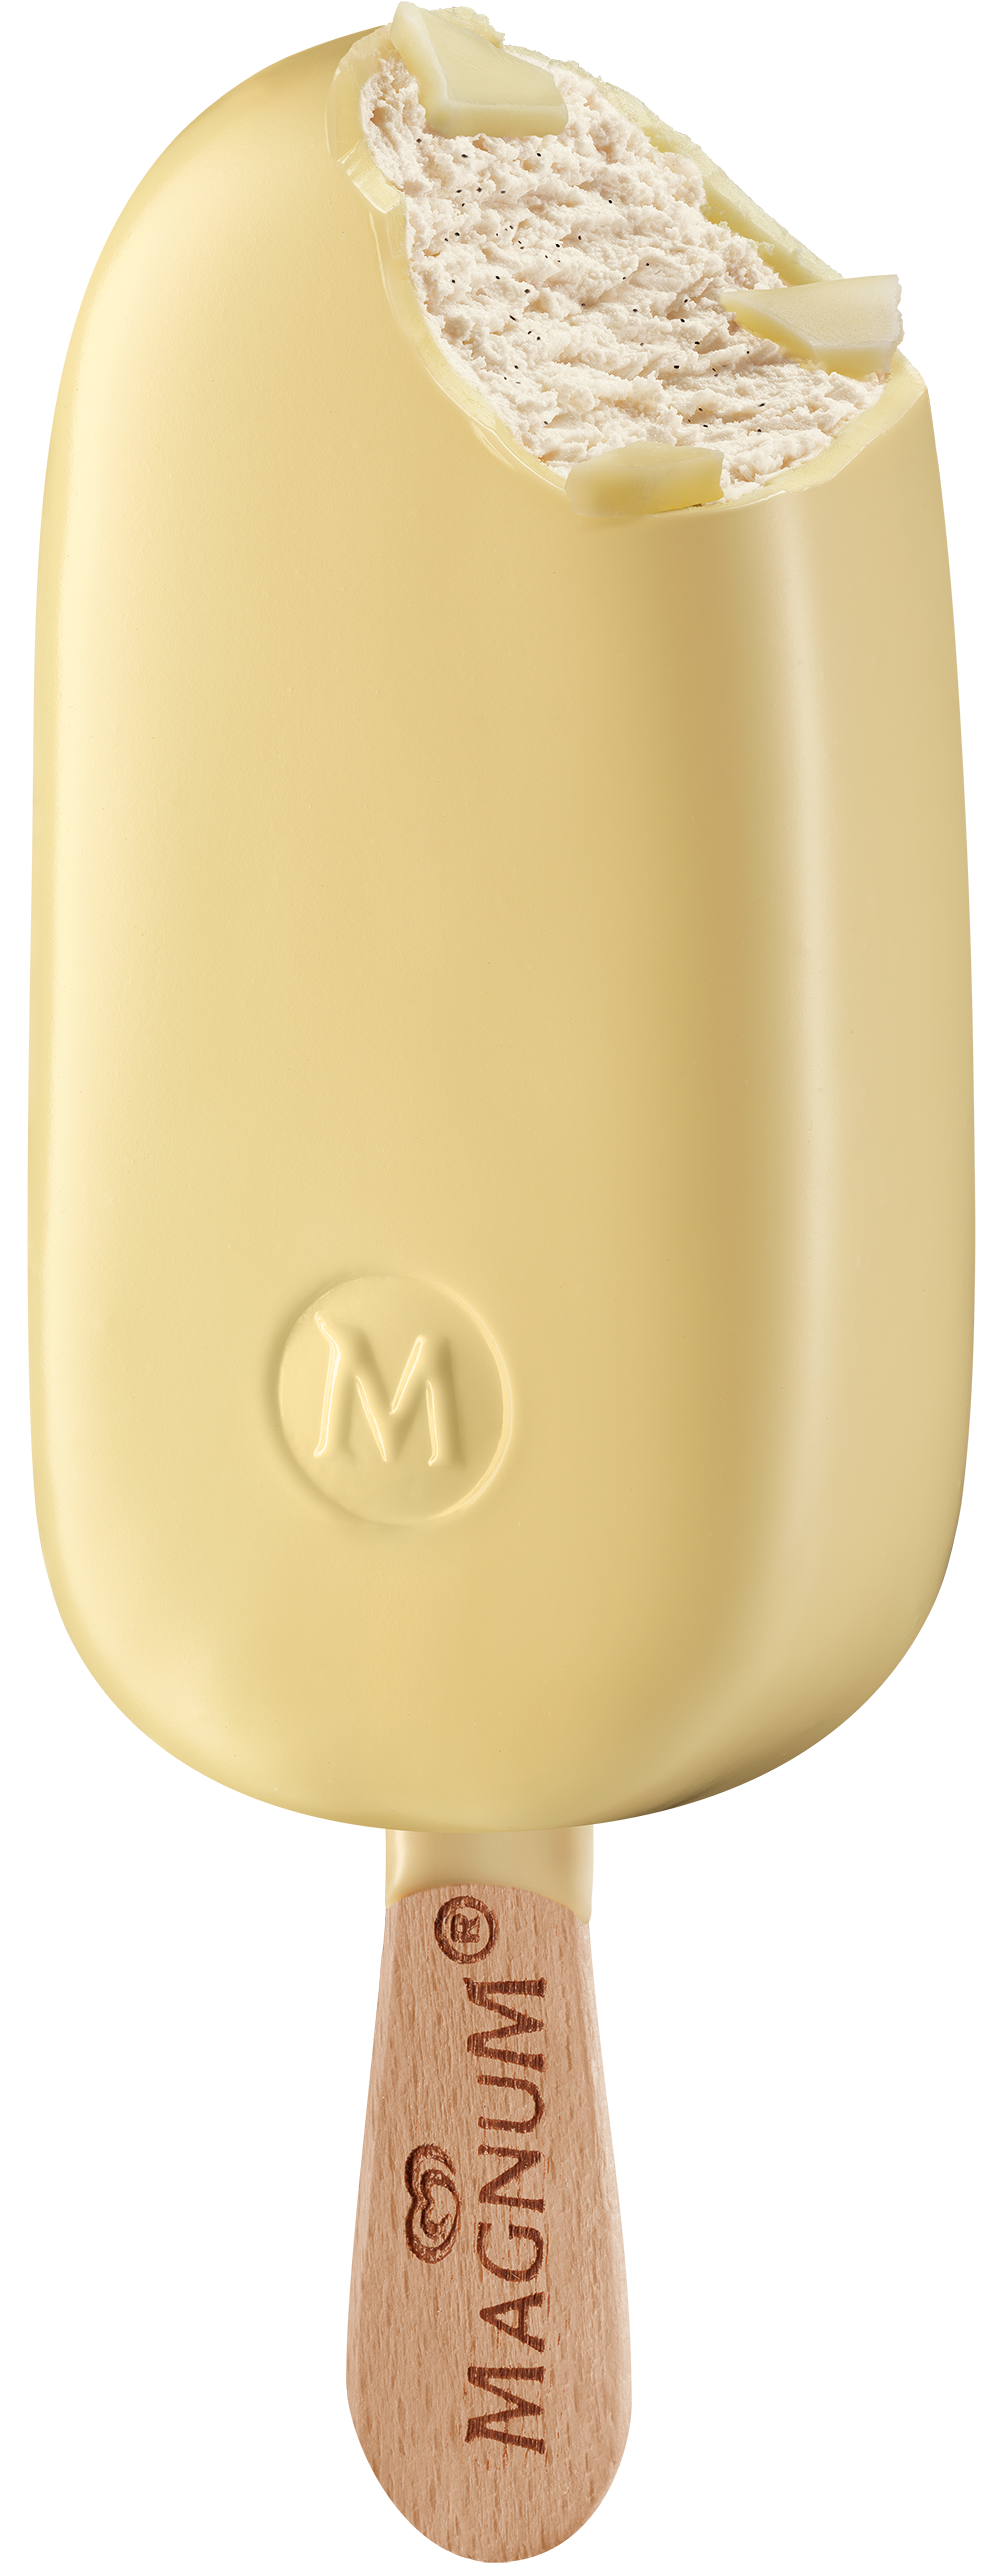 magnum ice cream - photo #39